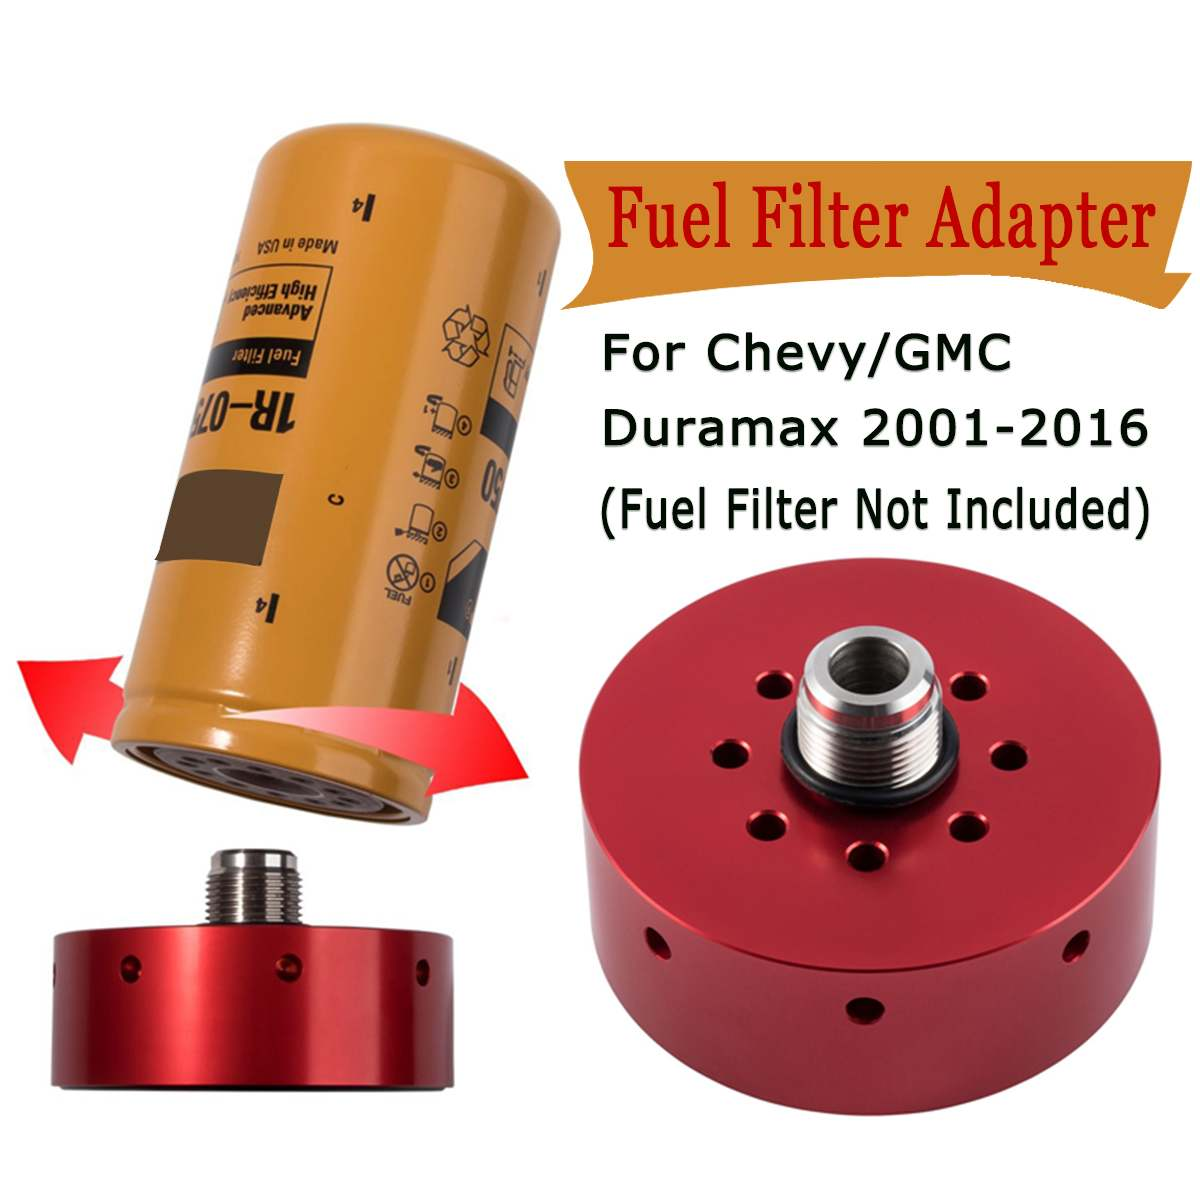 Buy duramax and get free shipping on AliExpress.com on 1993 gm fuel filter housing, 02 duramax oil cooler gasket, diesel fuel filter housing, 02 duramax pitman arm, 02 duramax water separator for, 02 duramax alternator, 1999 dodge cummins fuel filter housing, 02 duramax intercooler, 6.0 fuel filter housing,